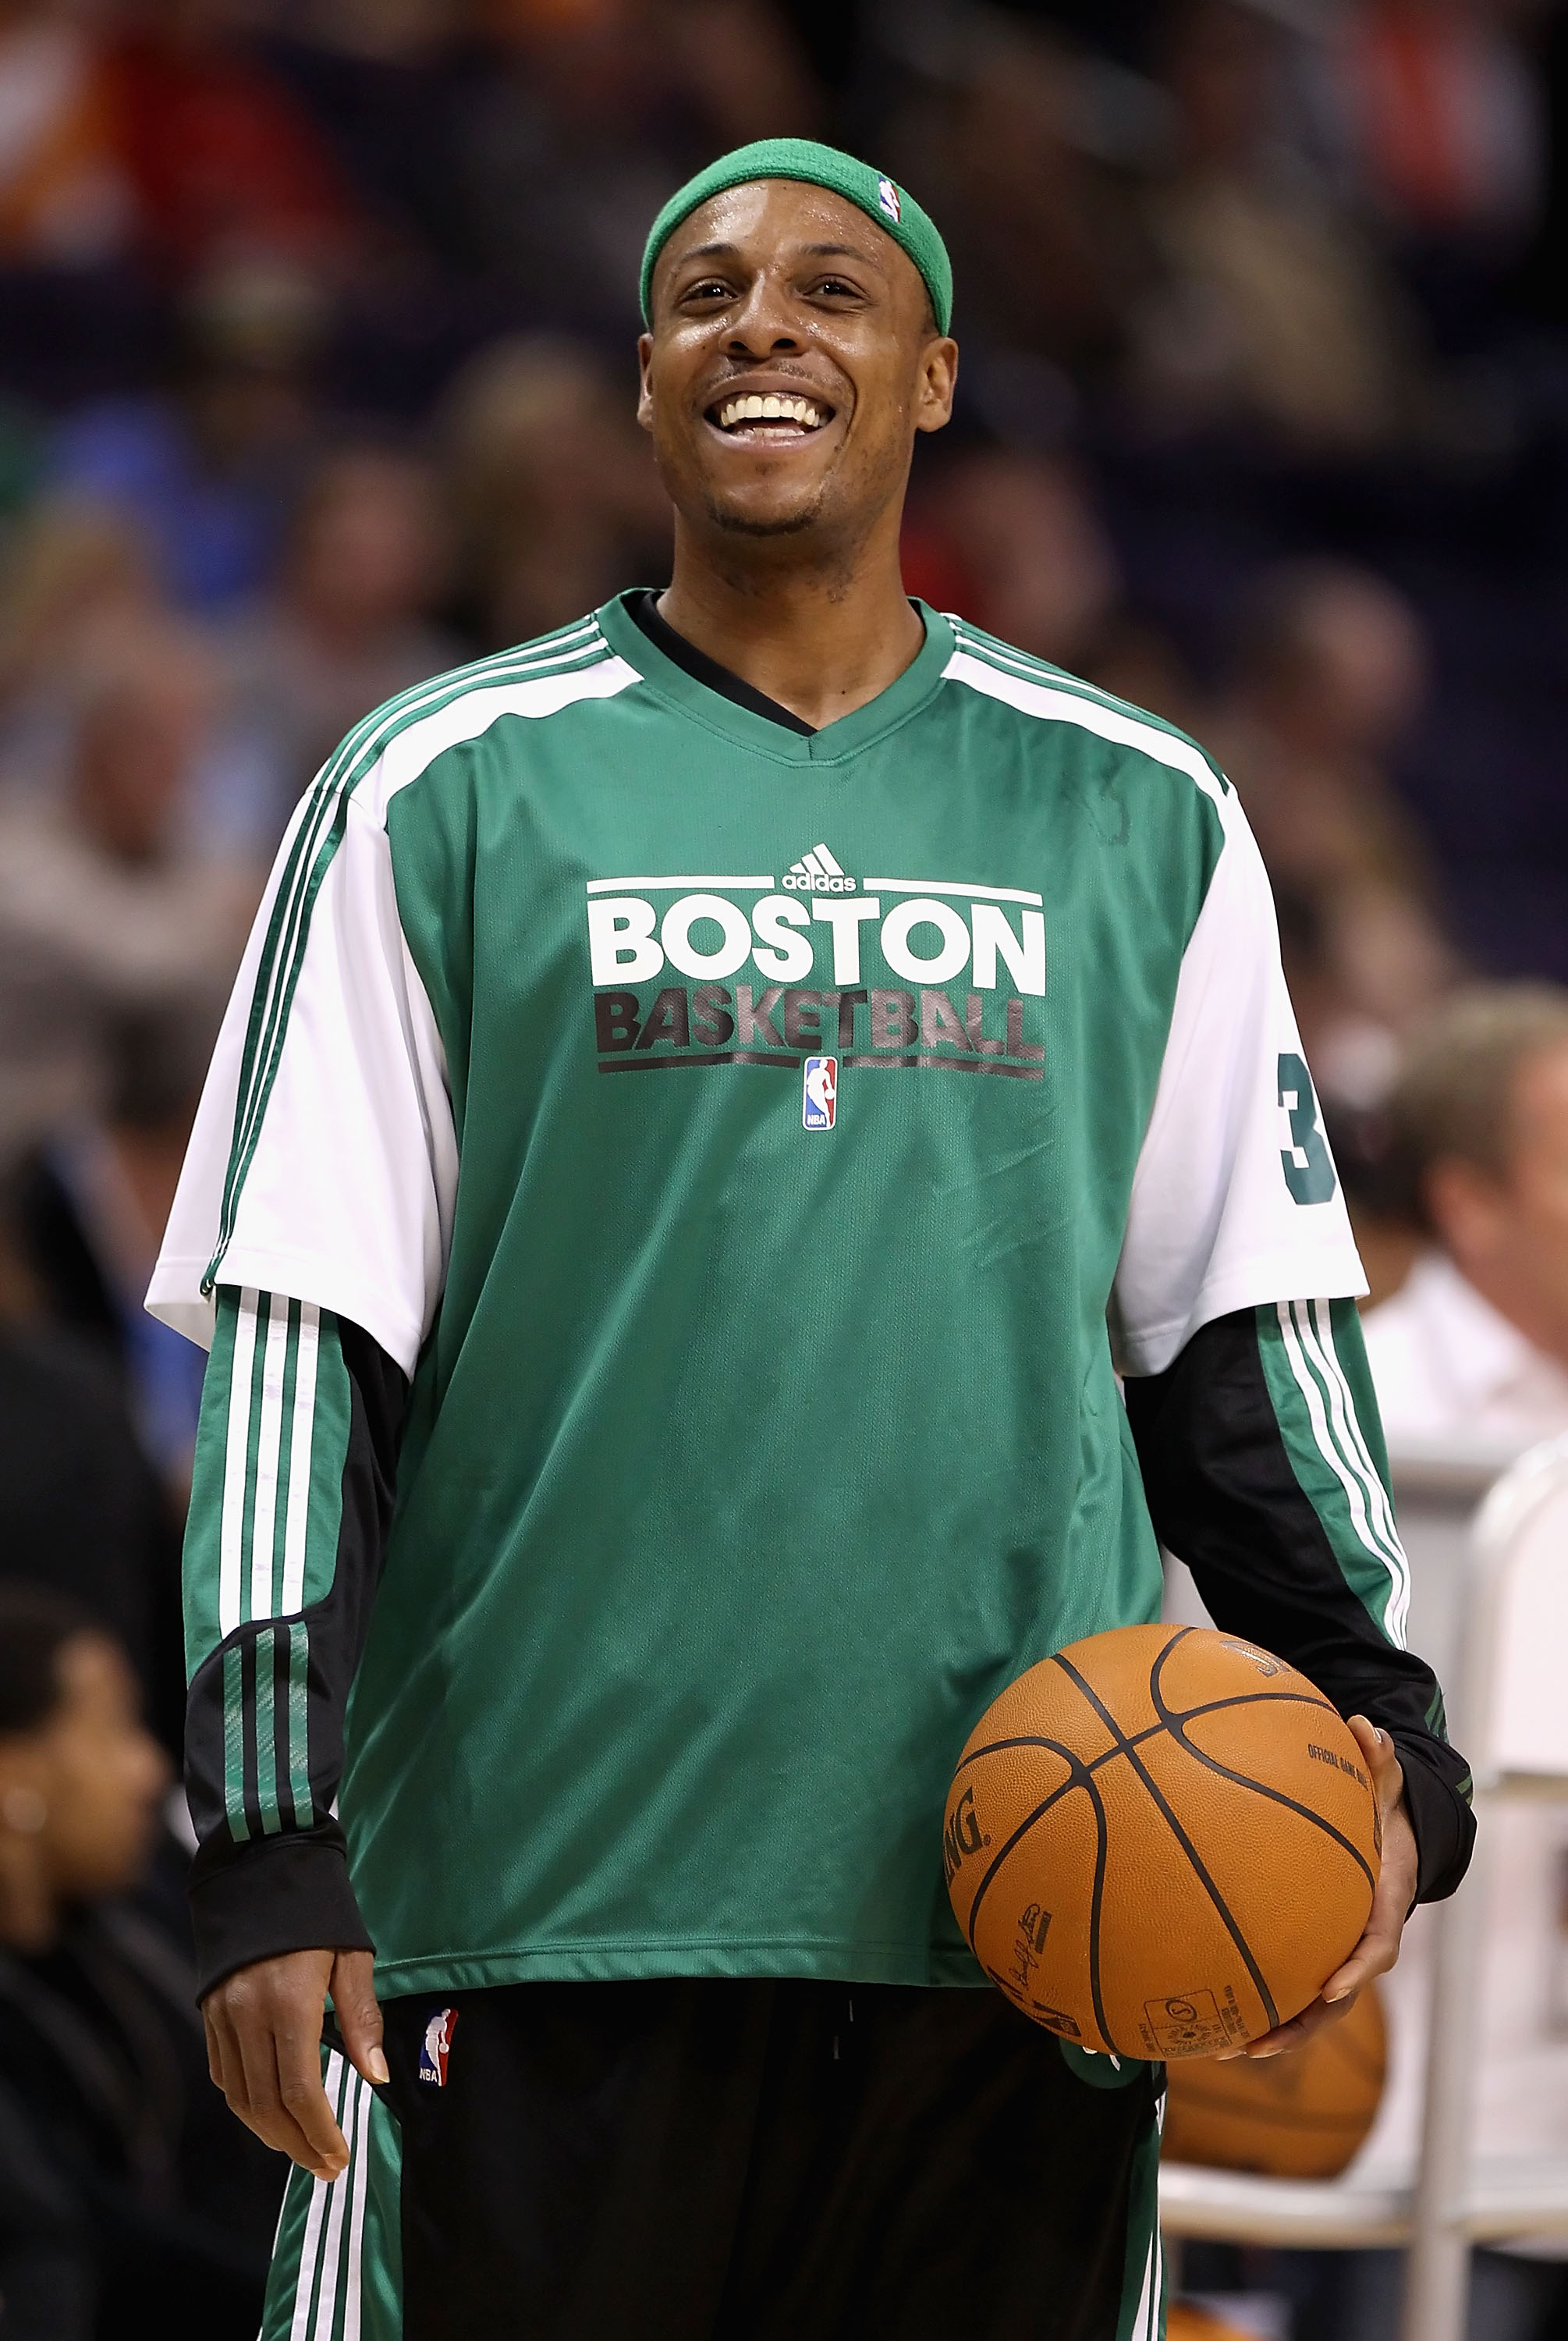 PHOENIX, AZ - JANUARY 28:  Paul Pierce #34 of the Boston Celtics warm up before the NBA game against the Phoenix Suns at US Airways Center on January 28, 2011 in Phoenix, Arizona. The Suns defeated the Celtics 88-71. NOTE TO USER: User expressly acknowled